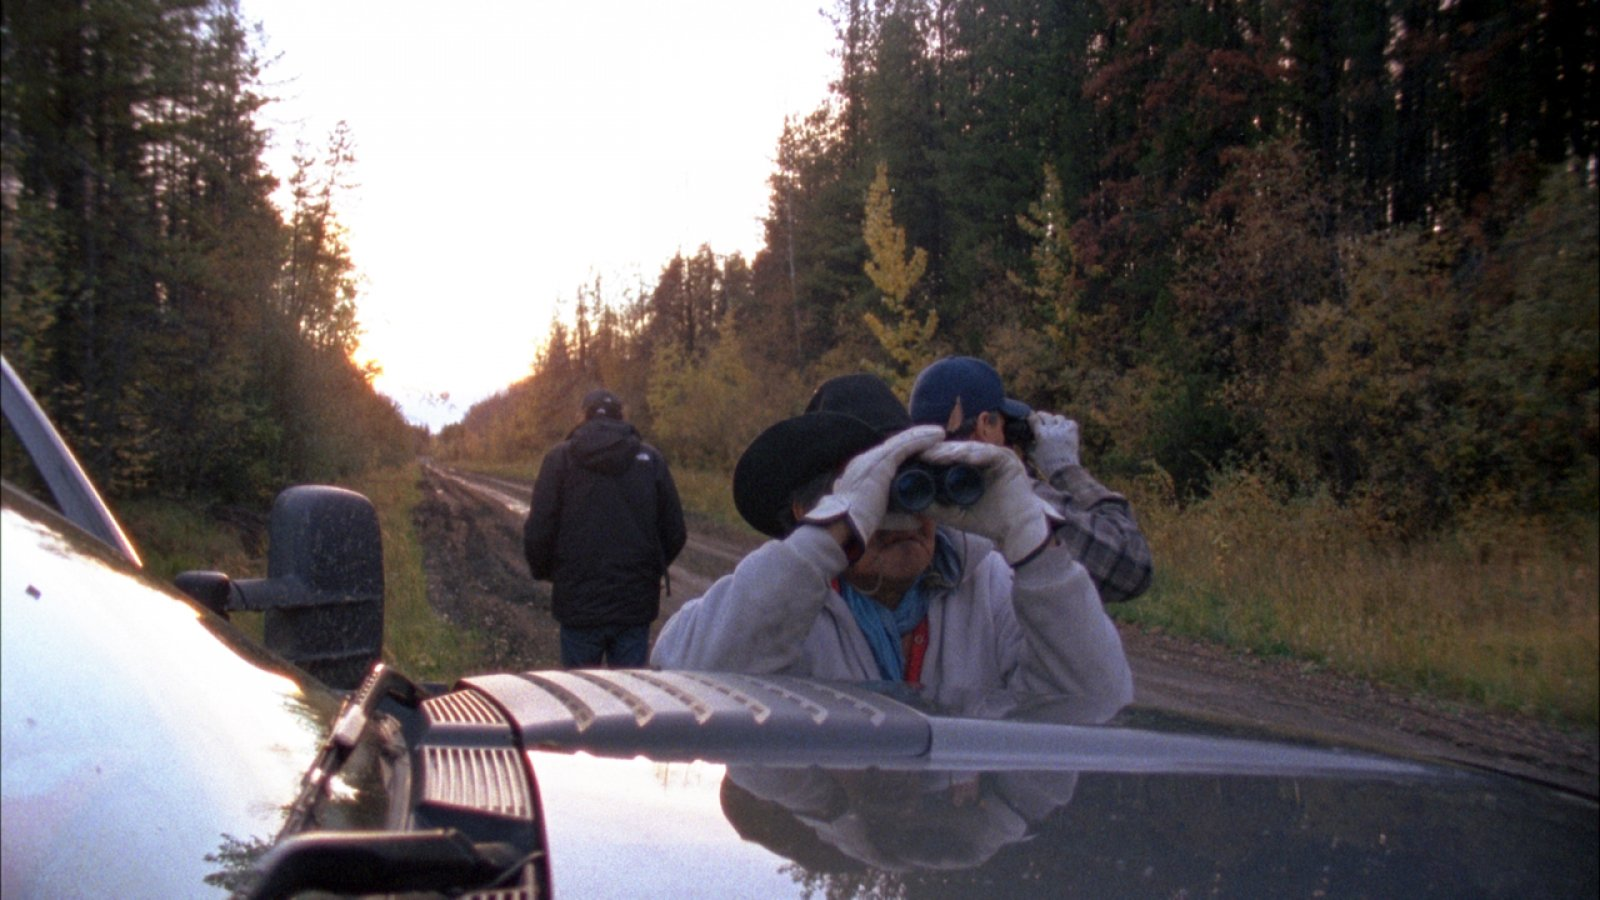 Brian Jungen and Duane Linklater, Modest Livelihood(still), 2012, super 16mm film, transferred to blu-ray, 50 minutes, silent